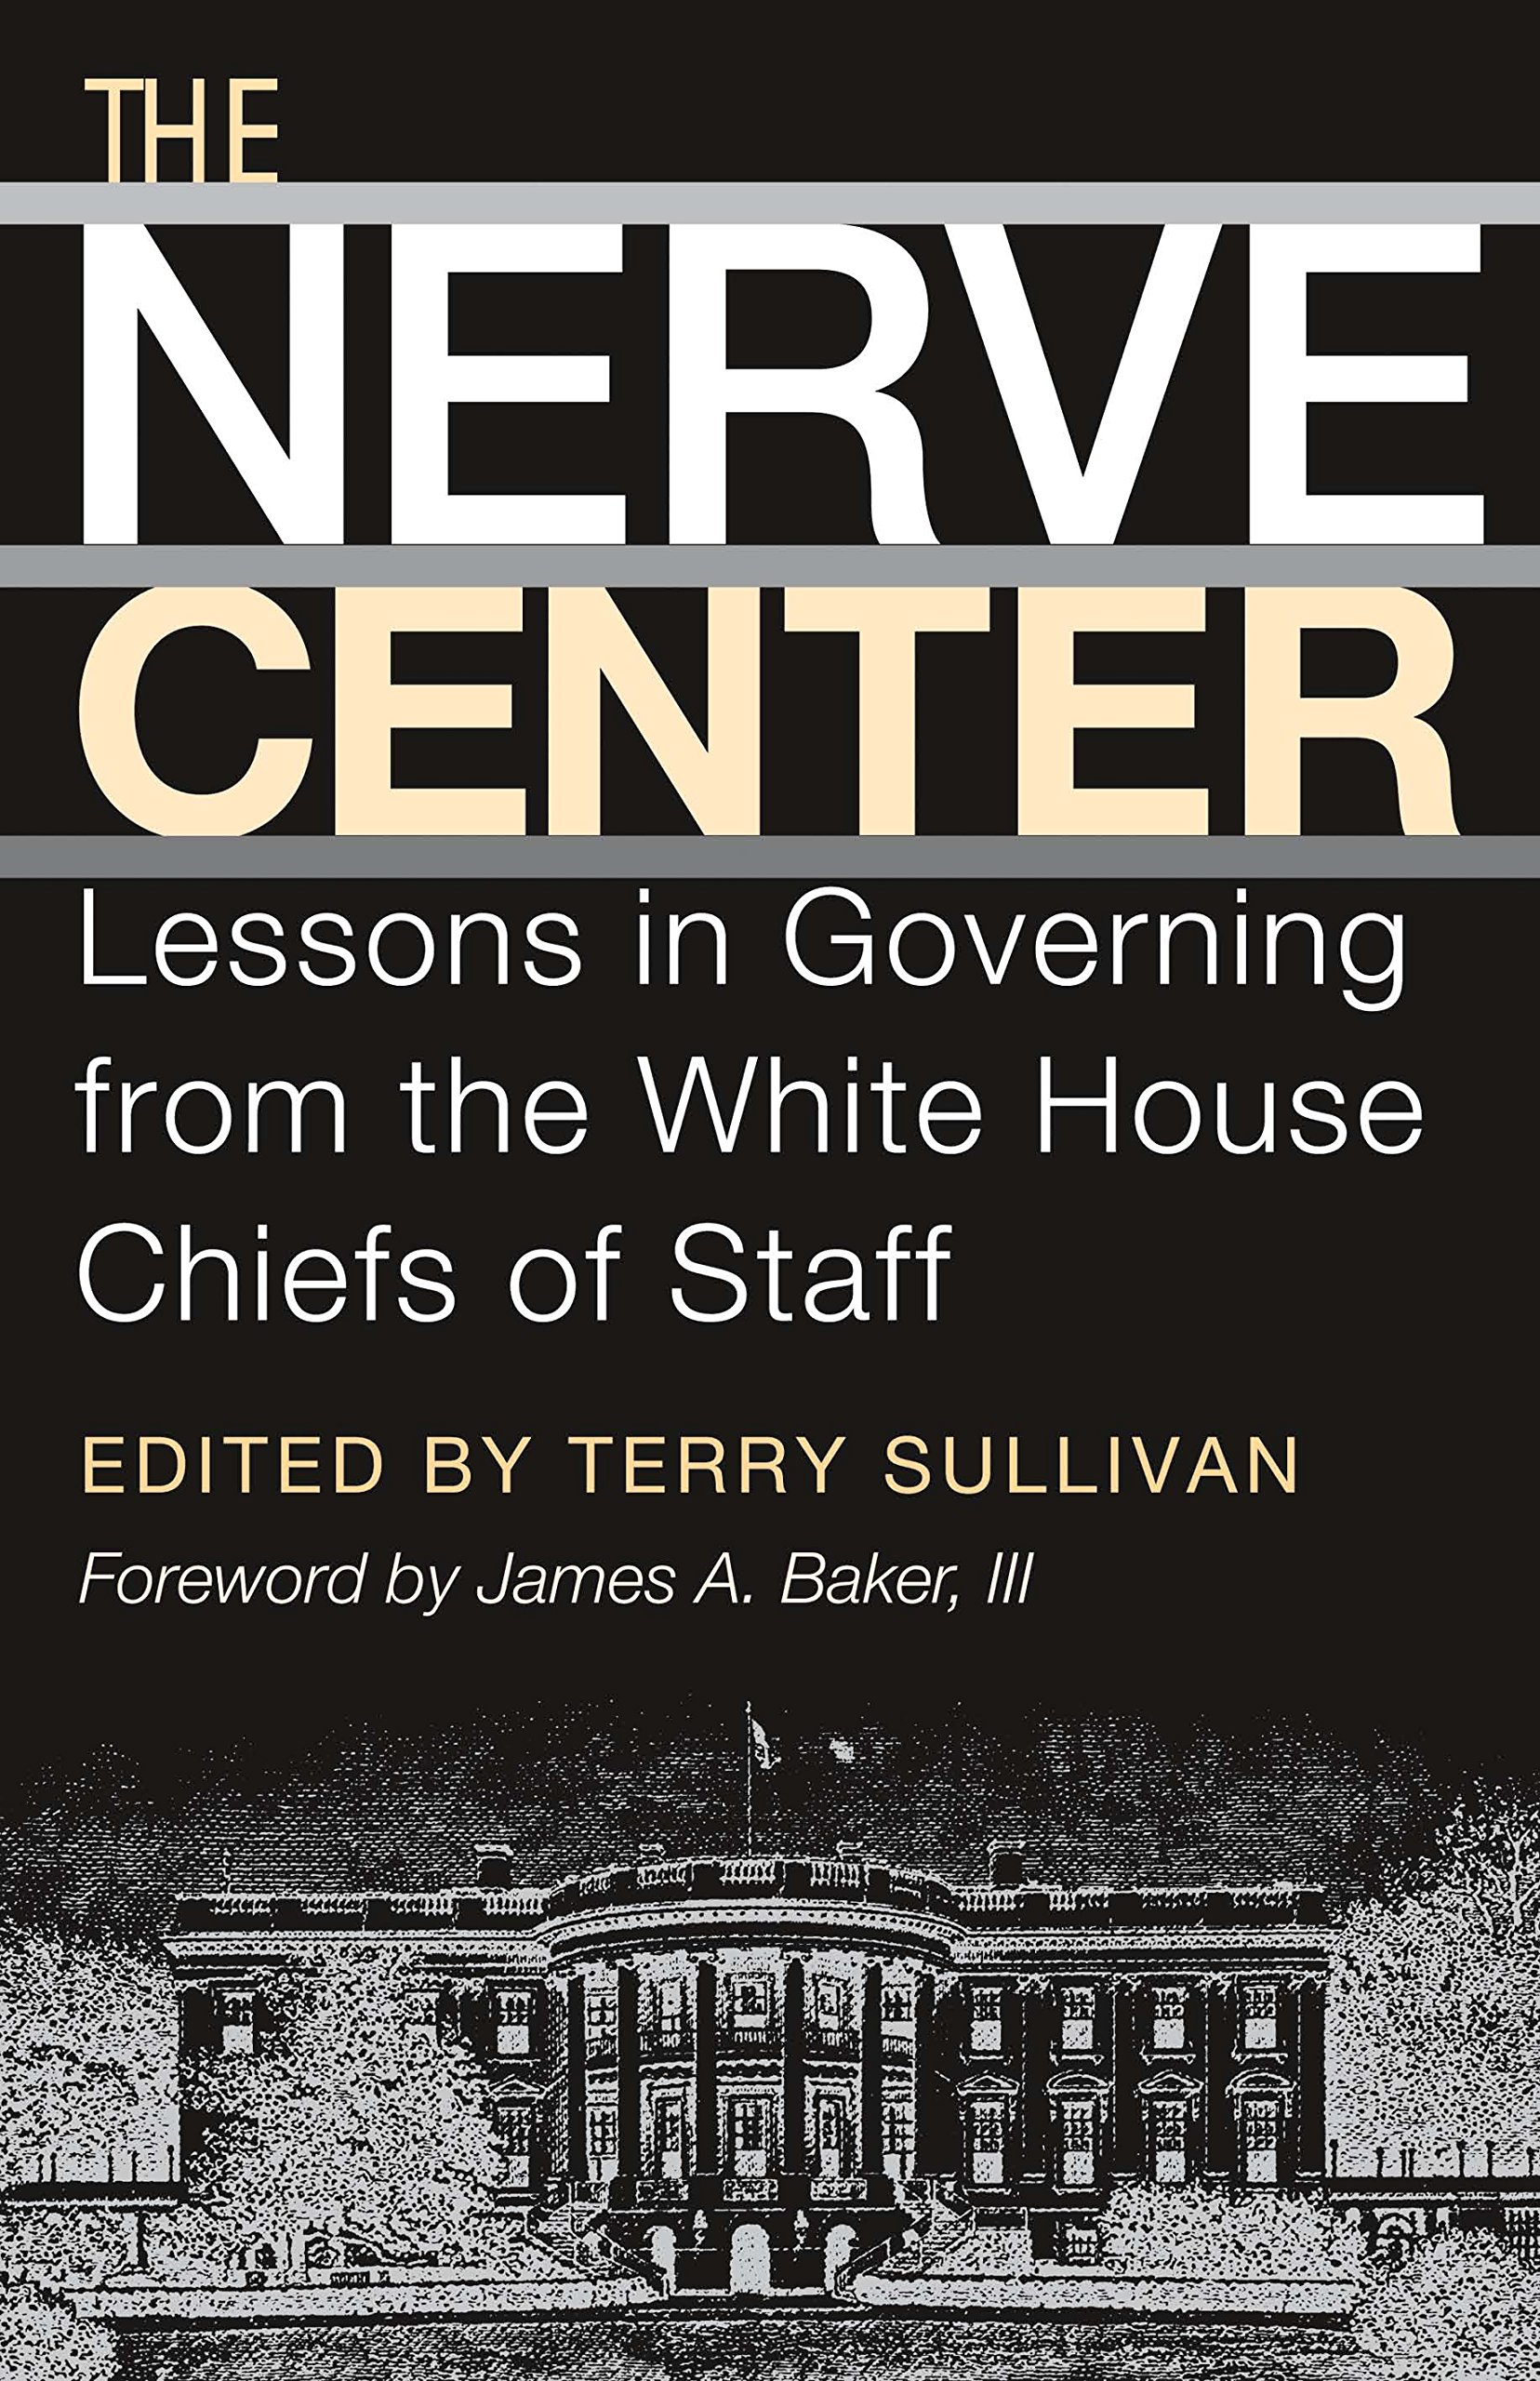 The Nerve Center: Lessons in Governing from the White House Chiefs of Staff (Joseph V. Hughes Jr. and Holly O. Hughes Series on the Presidency and Leadership) PDF